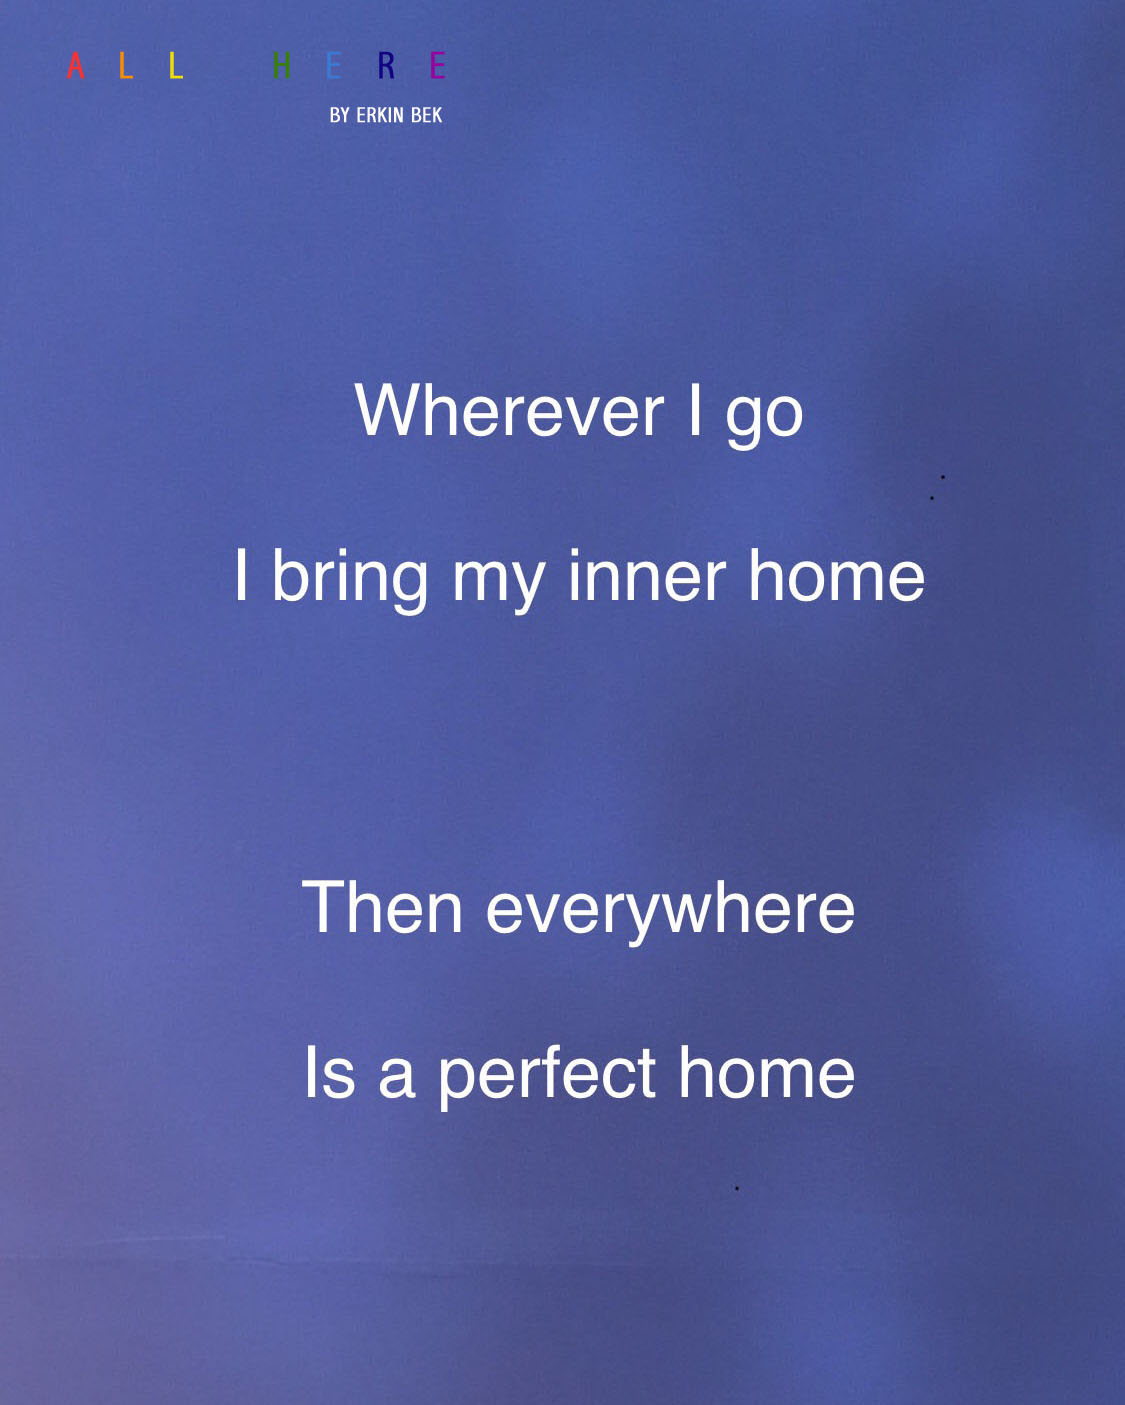 Wherever I go. I bring my inner home. Then everywhere is a perfect home - Meditation quotes - All Here By Erkin Bek